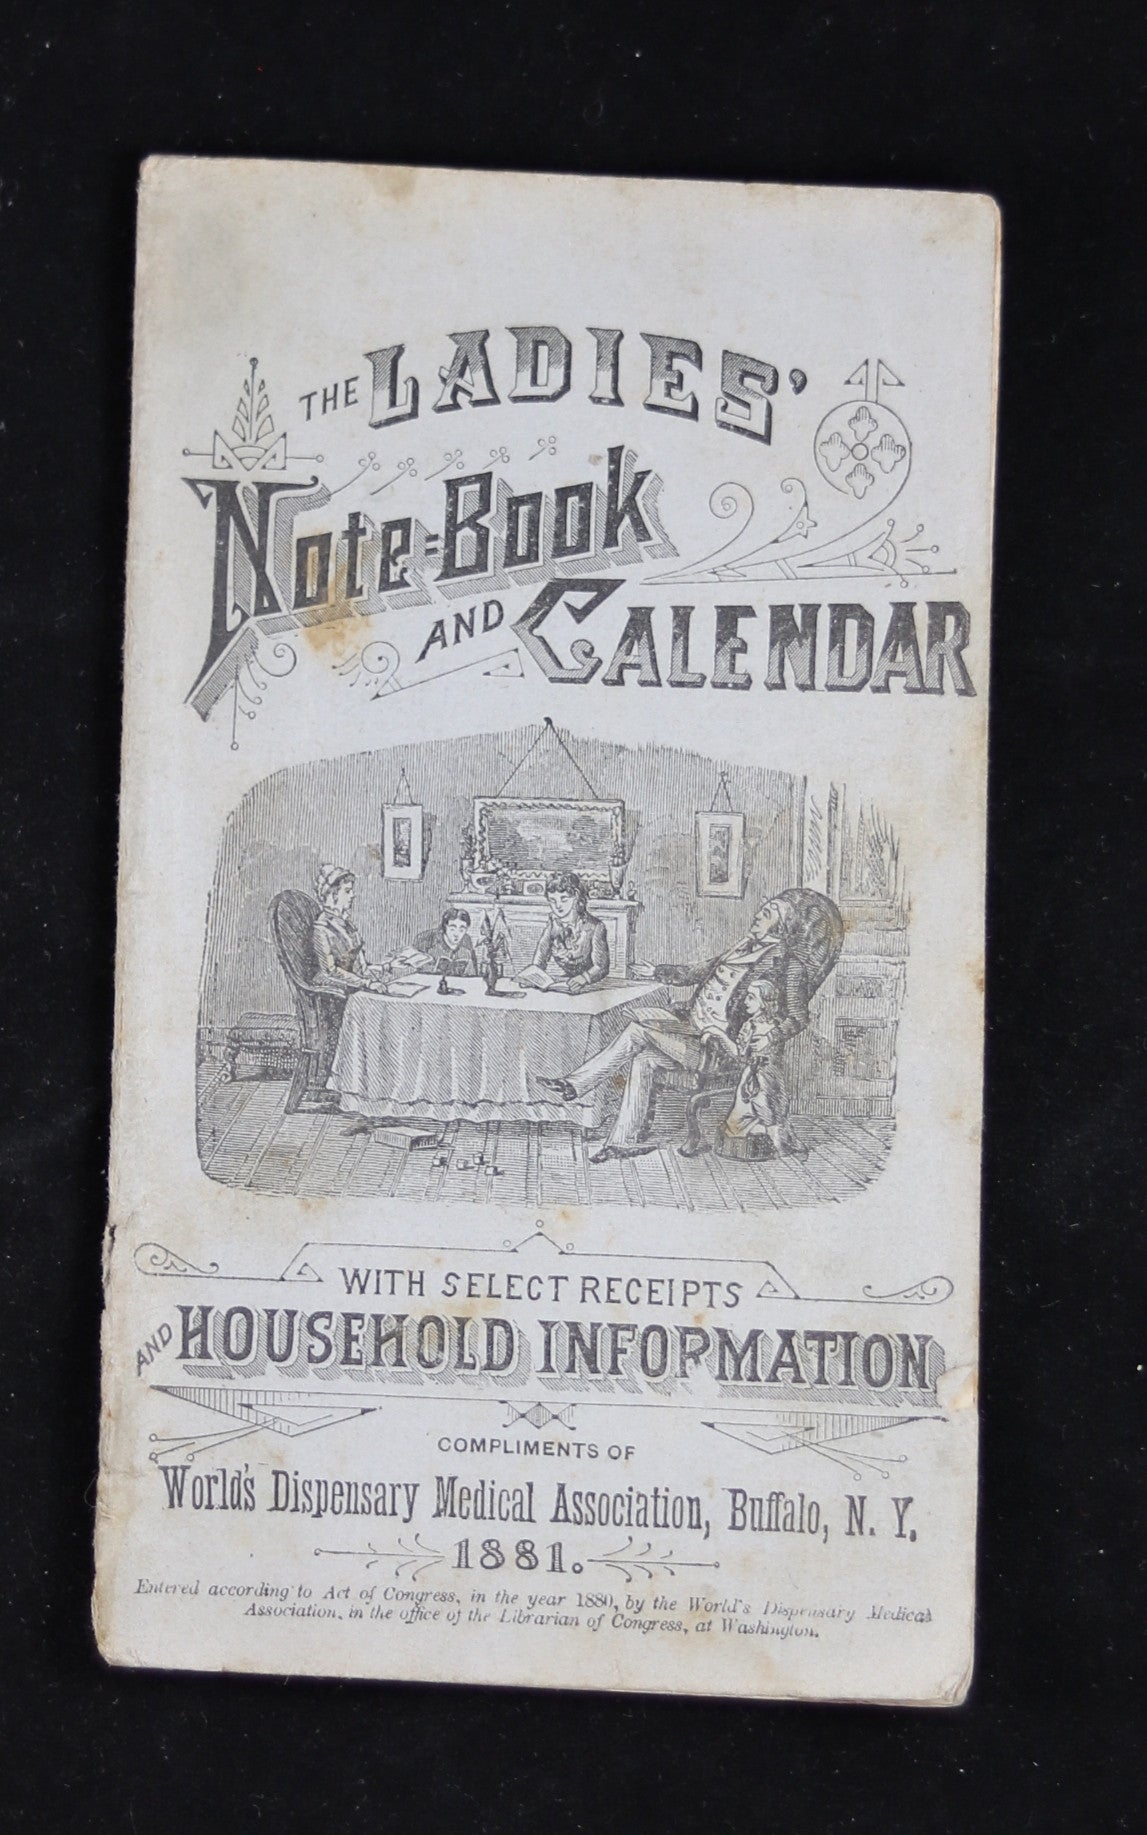 1881 Ladies Notebook and Calendar (Household info,recipes, and medicinal adv.)